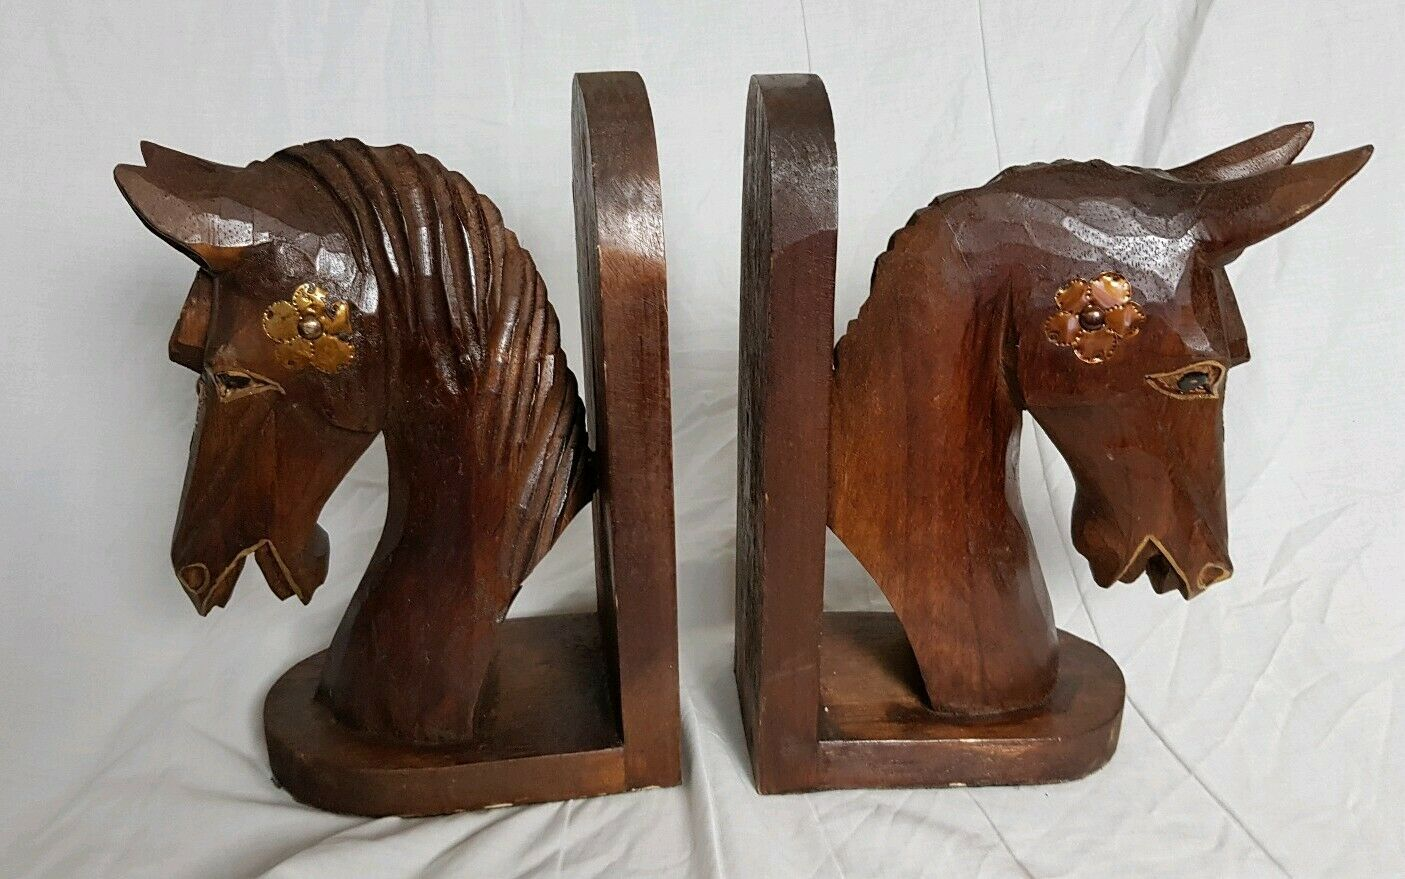 Pair of Schön Large Wood and Brass Horse Head Bookends (Height - 28.5 cm)